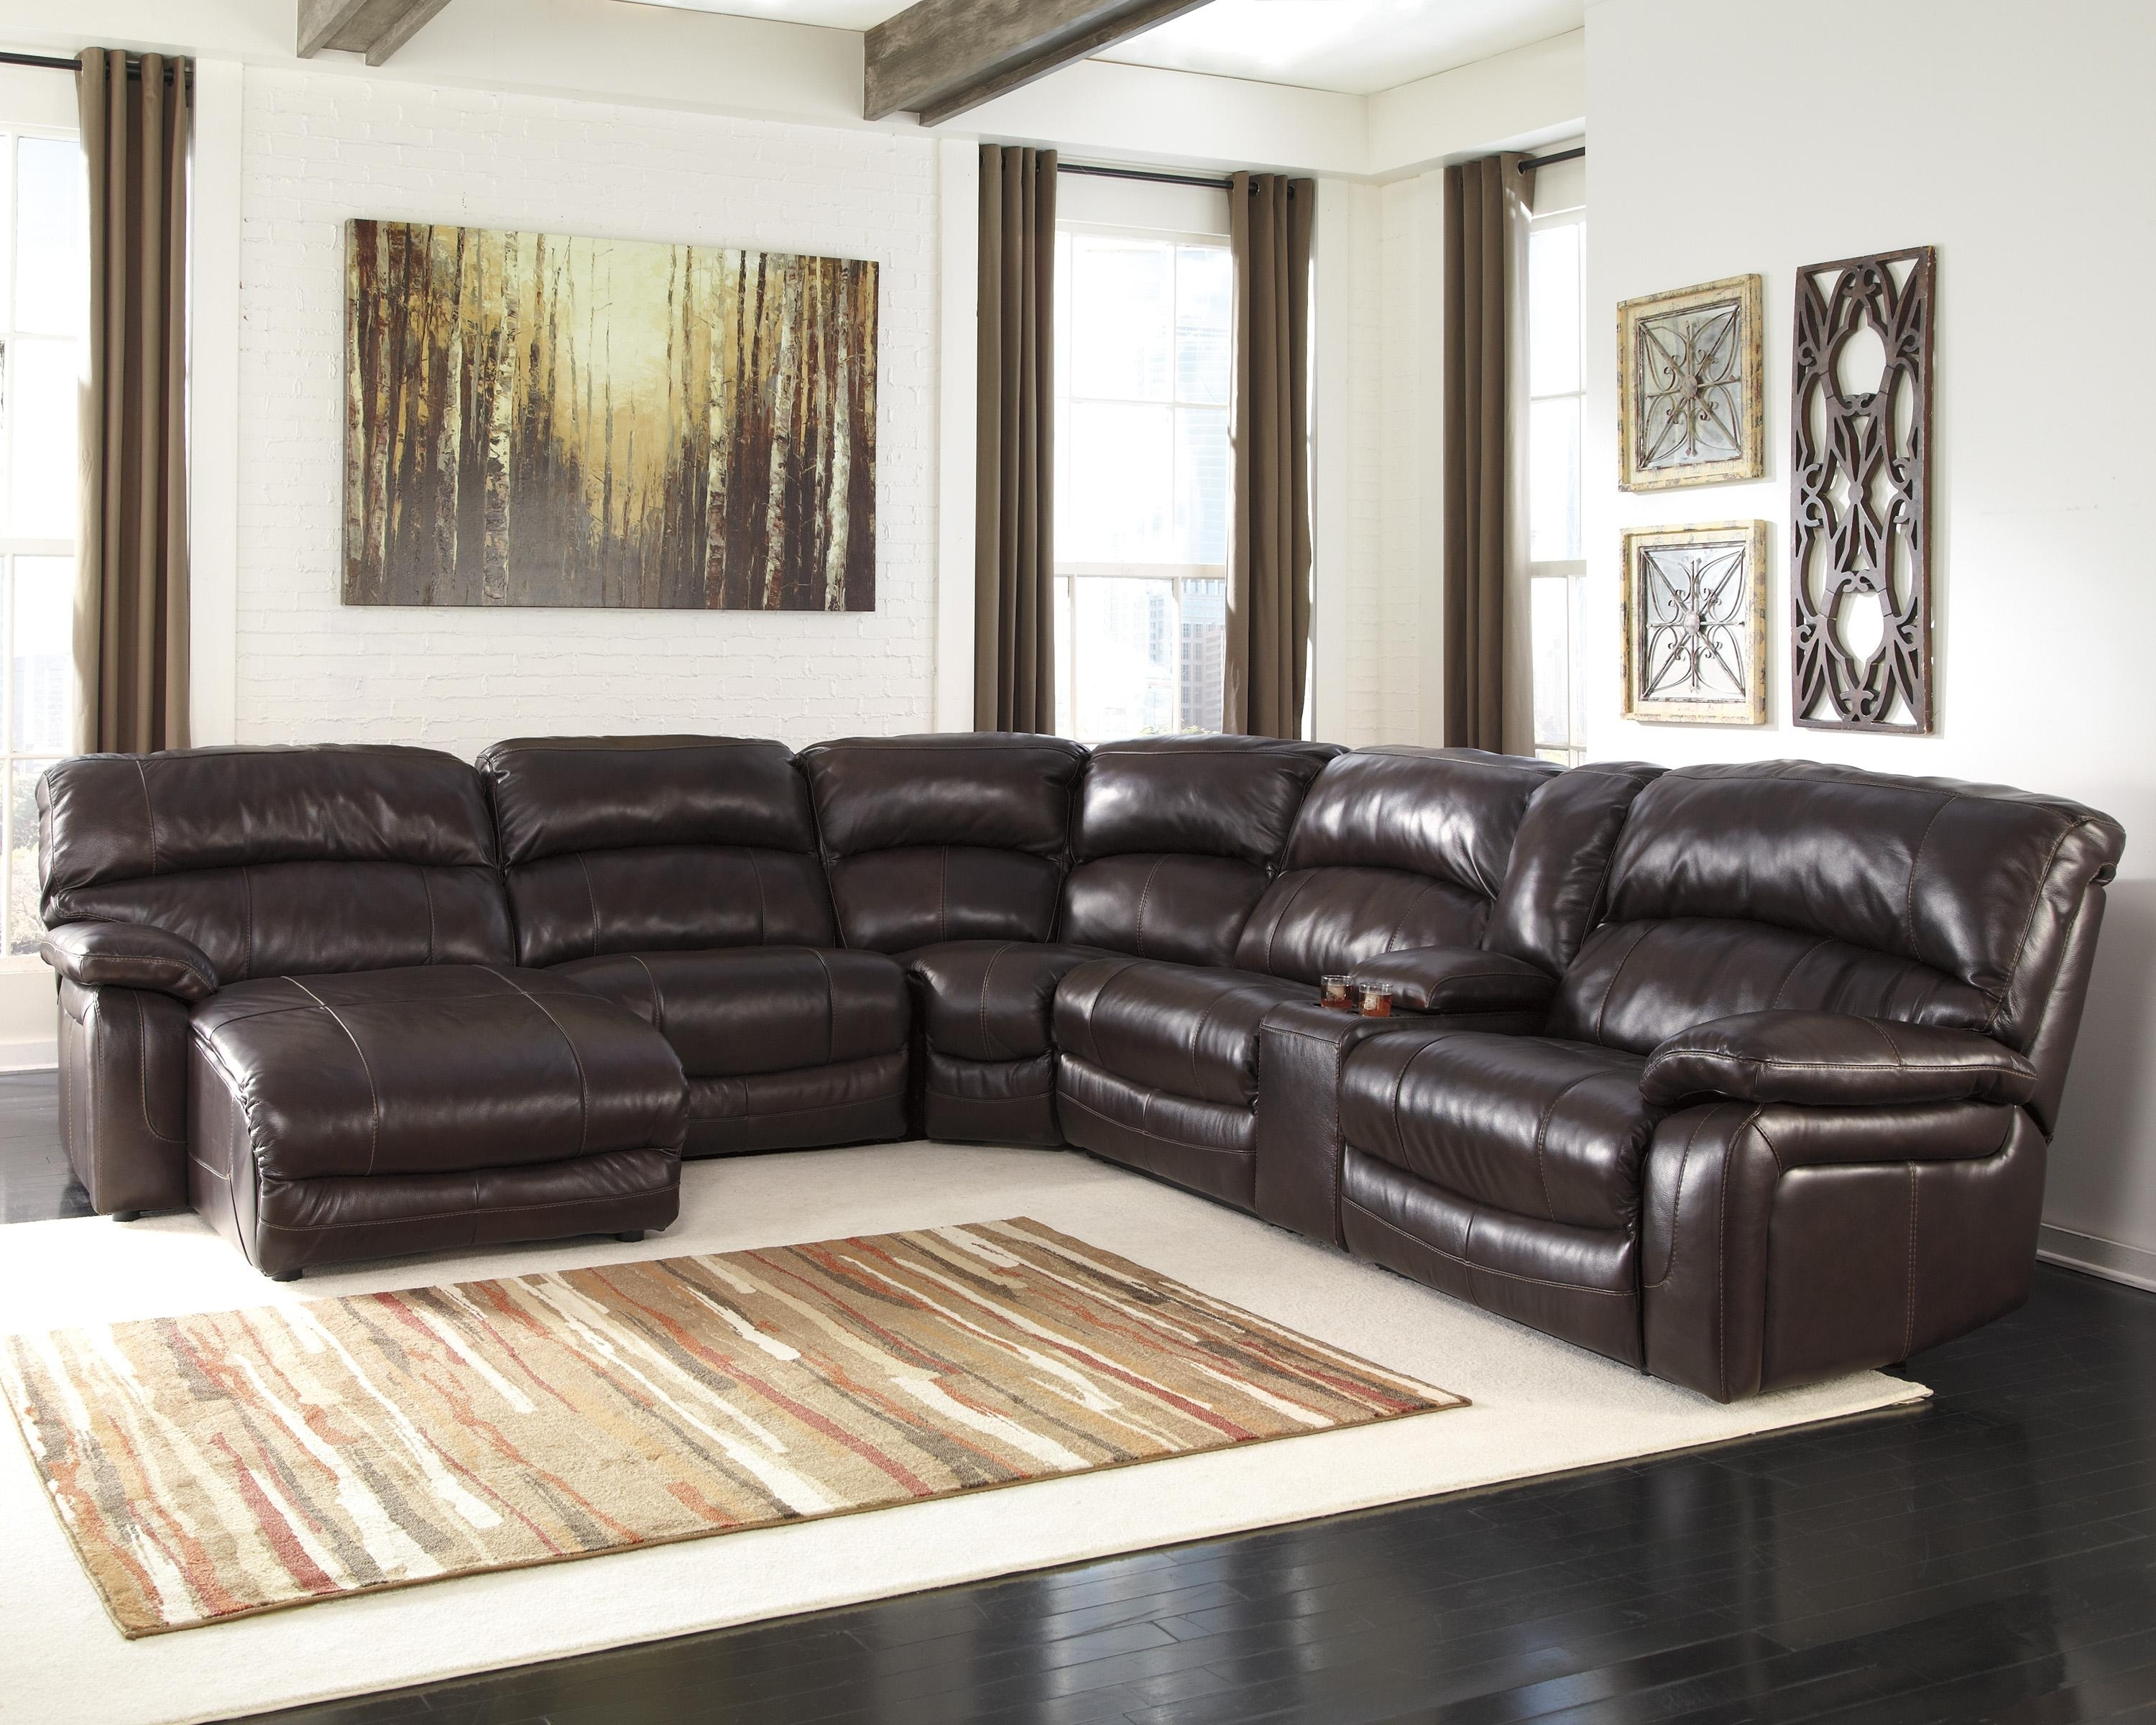 Preferred Brown Leather Sectionals With Chaise Inside Reclining Sectional W/ Console & Right Press Back Chaise (View 12 of 15)